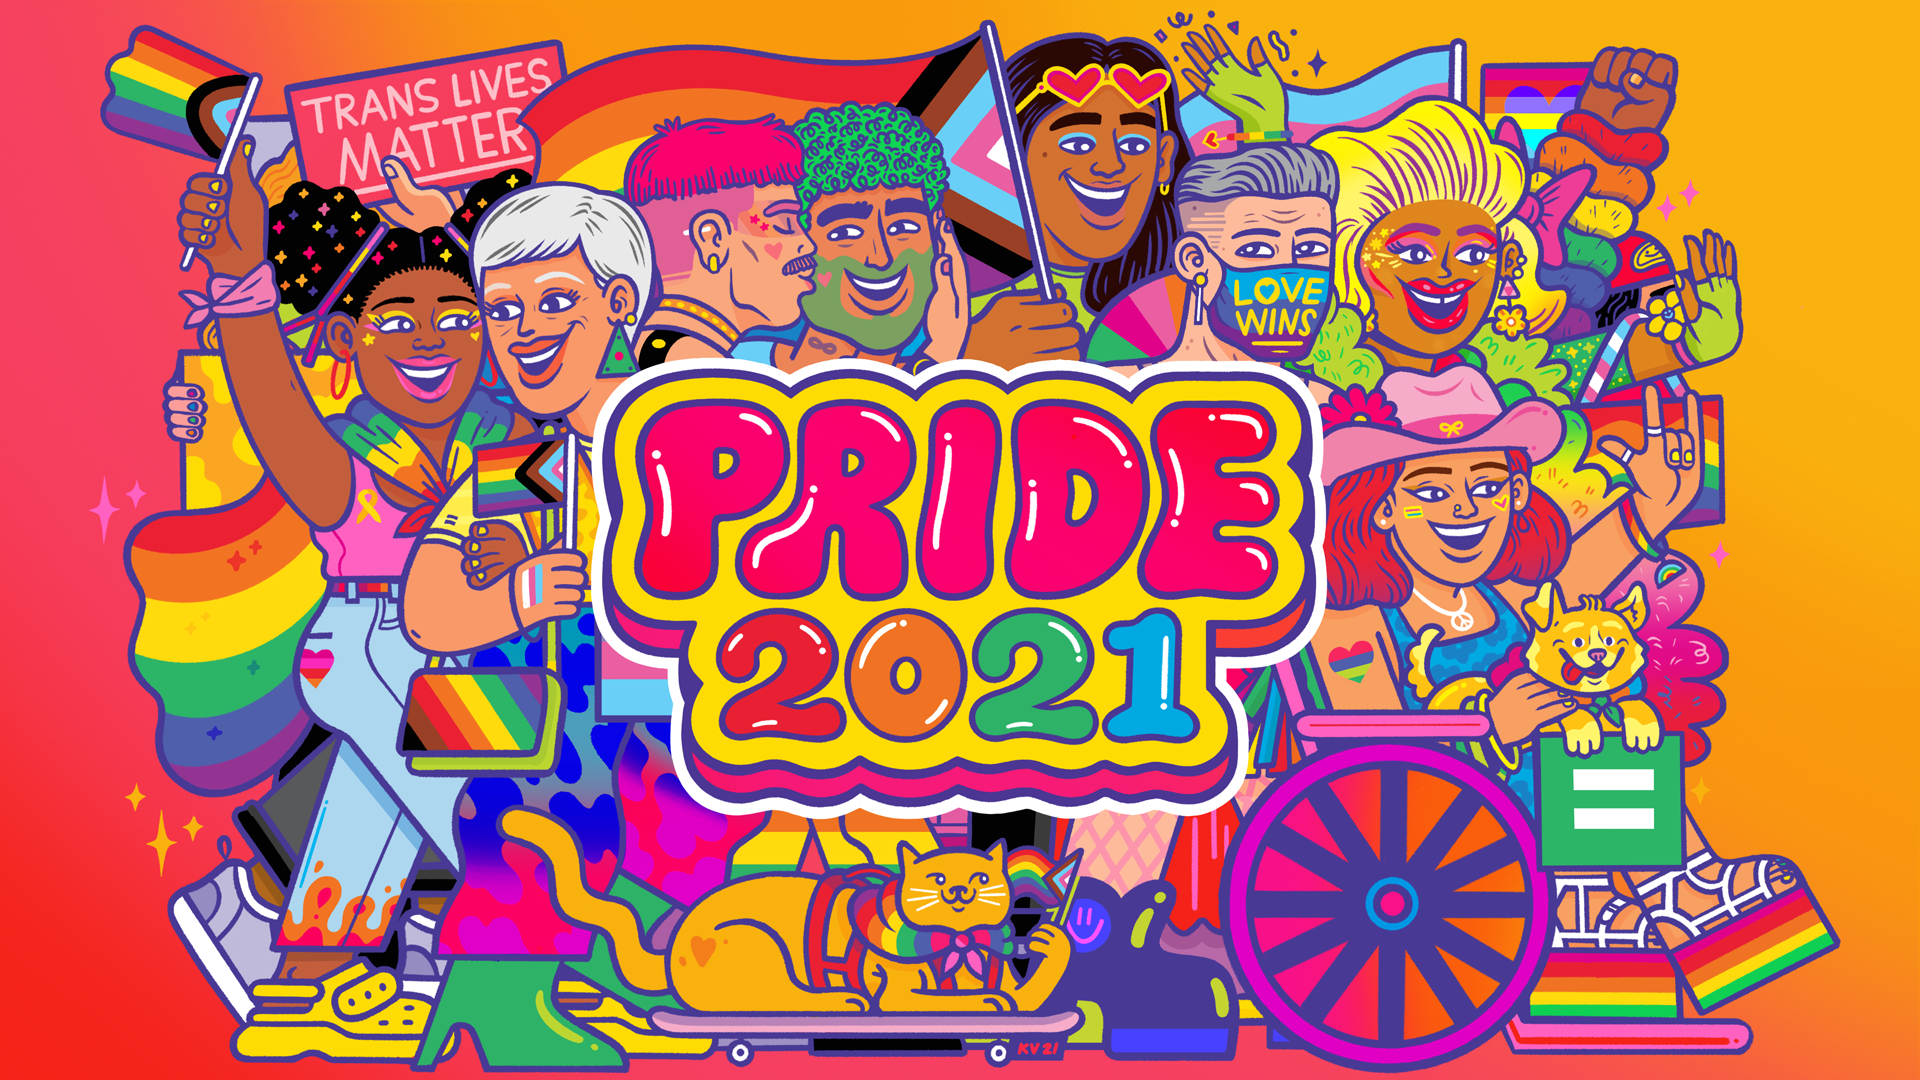 Pride 2021 graphic featuring people and pets dressed up in colorful outfits